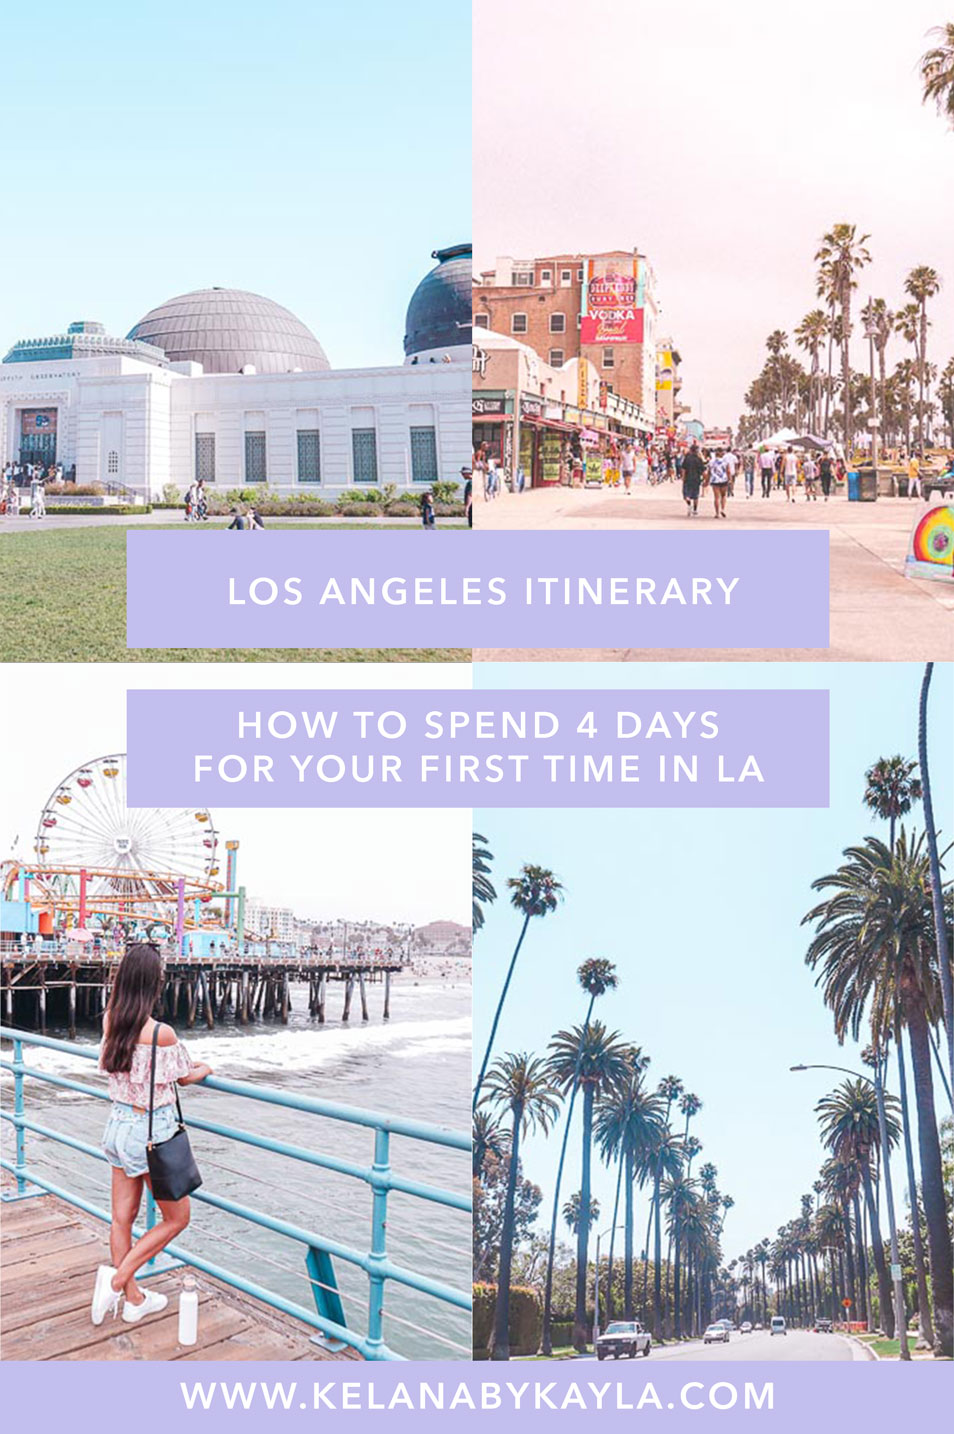 Los Angeles Itinerary for 4 Days